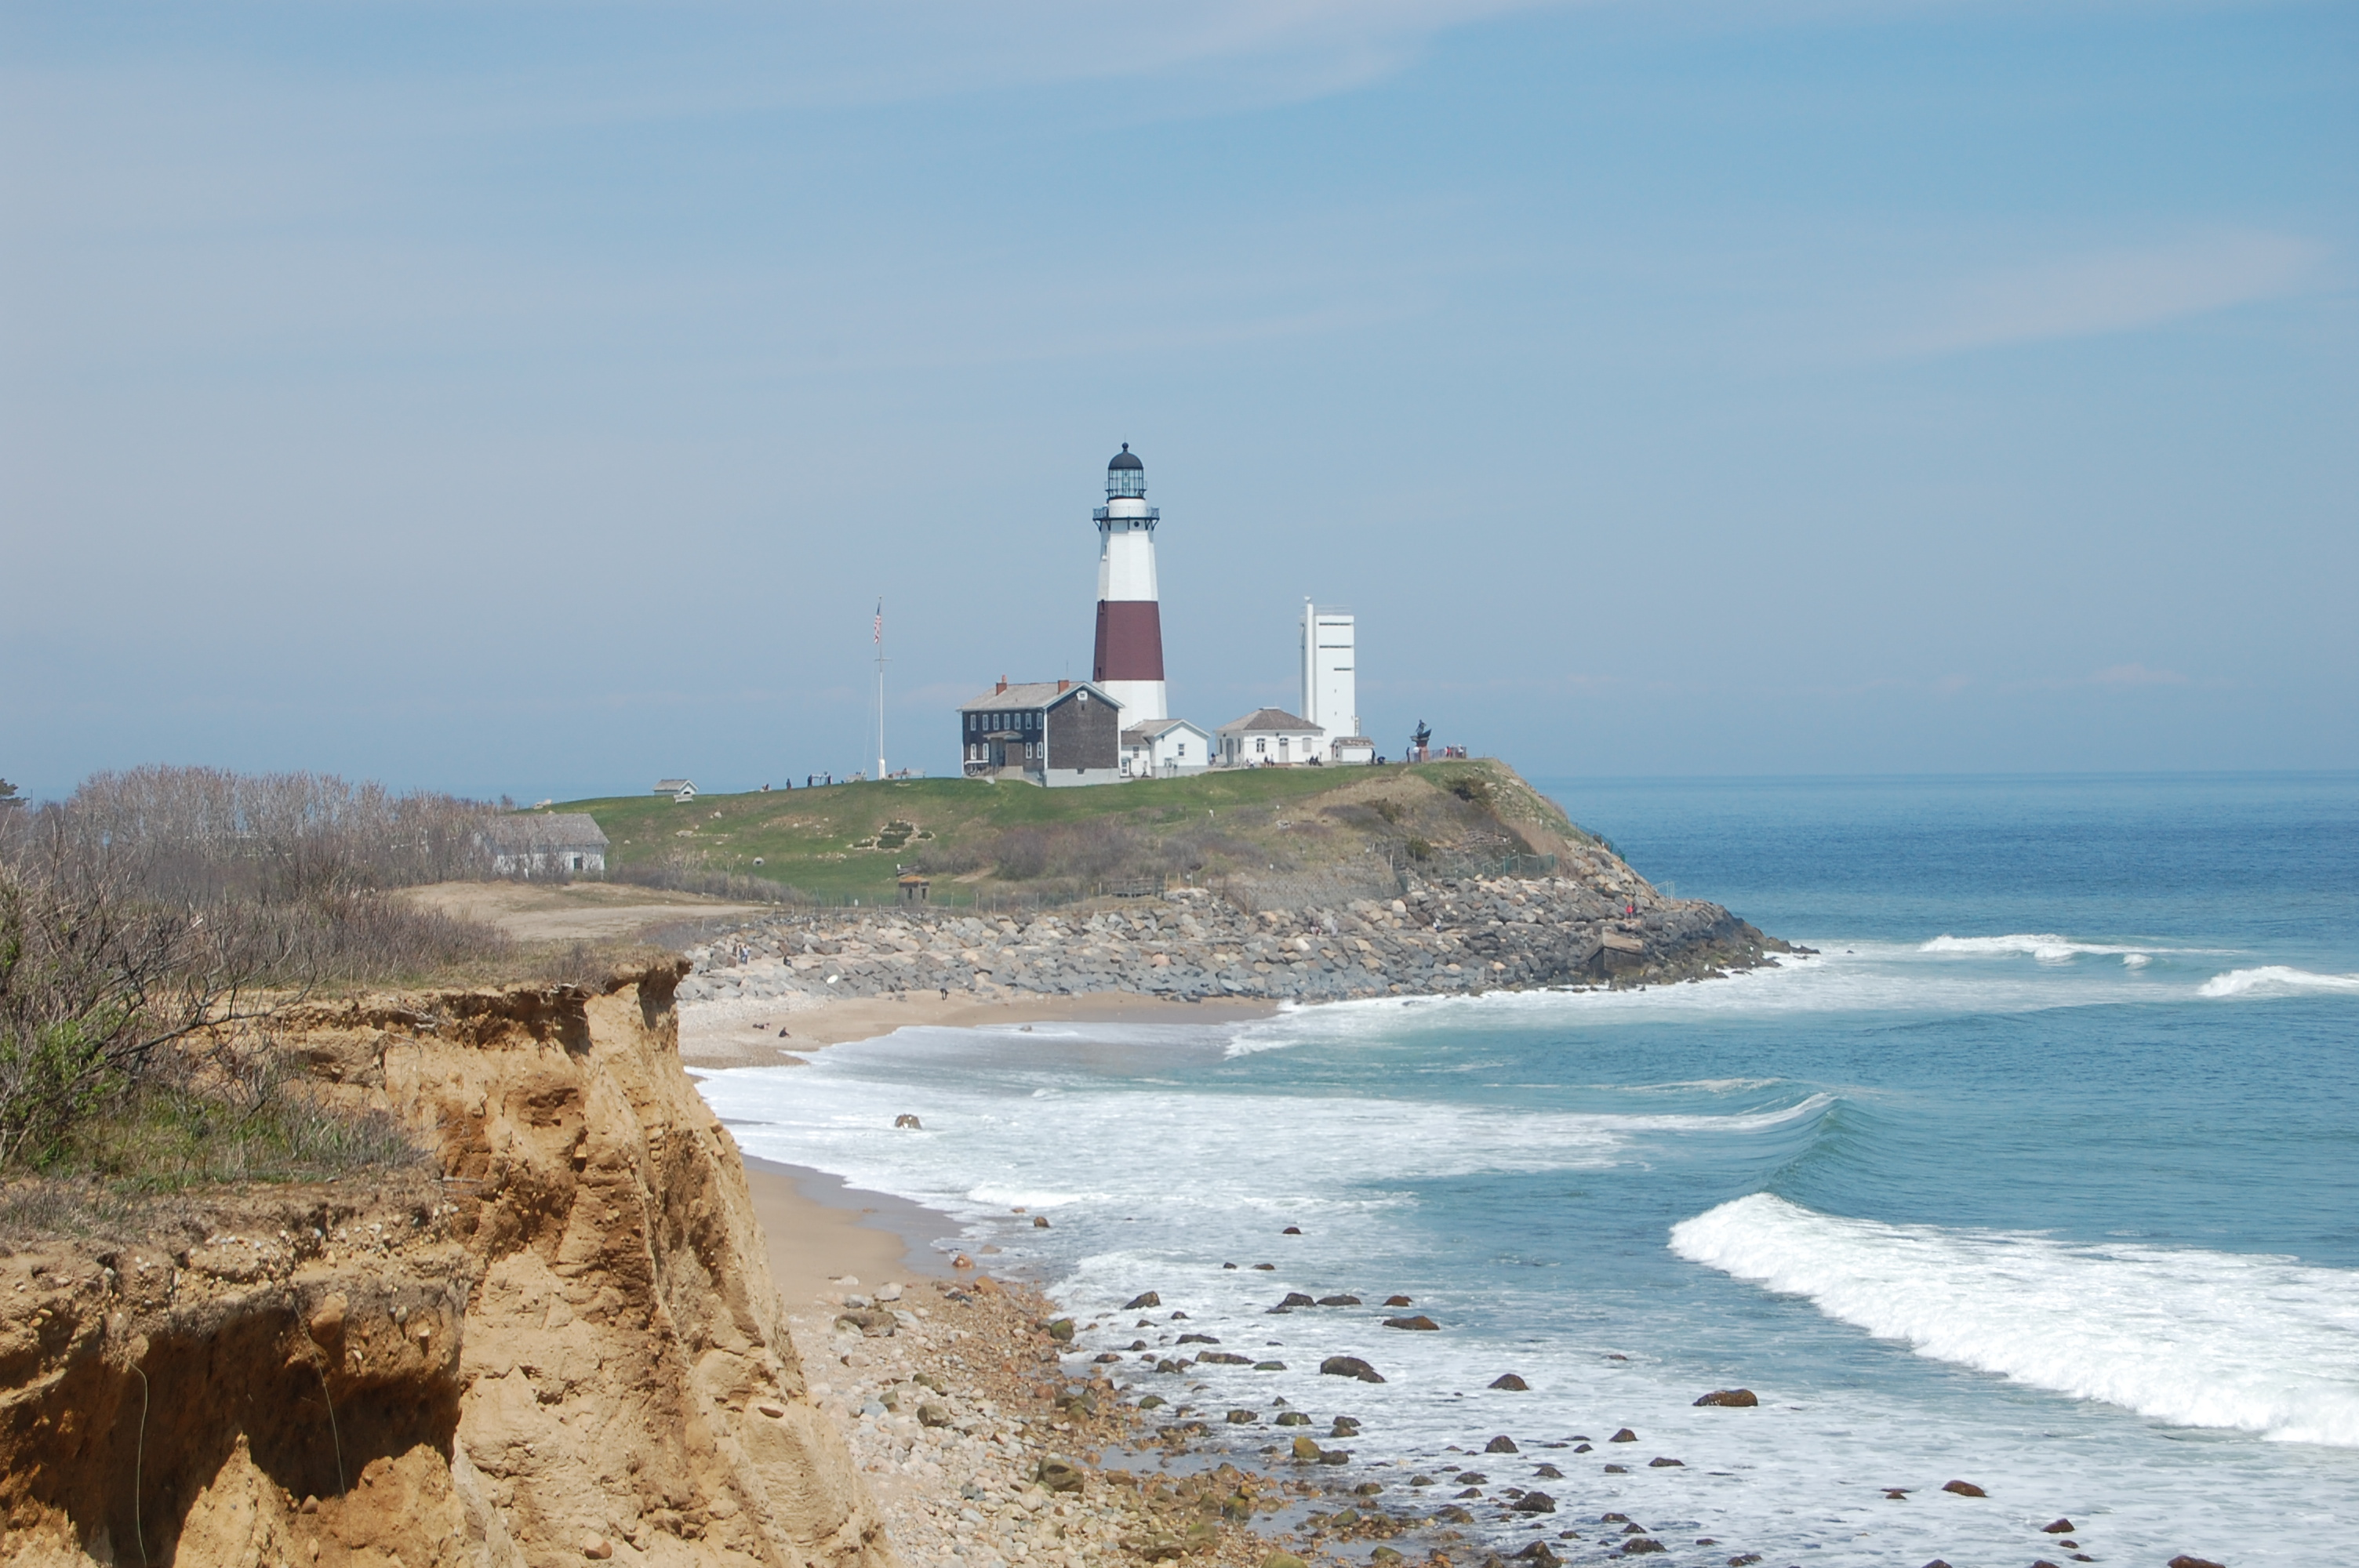 Montauk Point Lighthouse and Museum